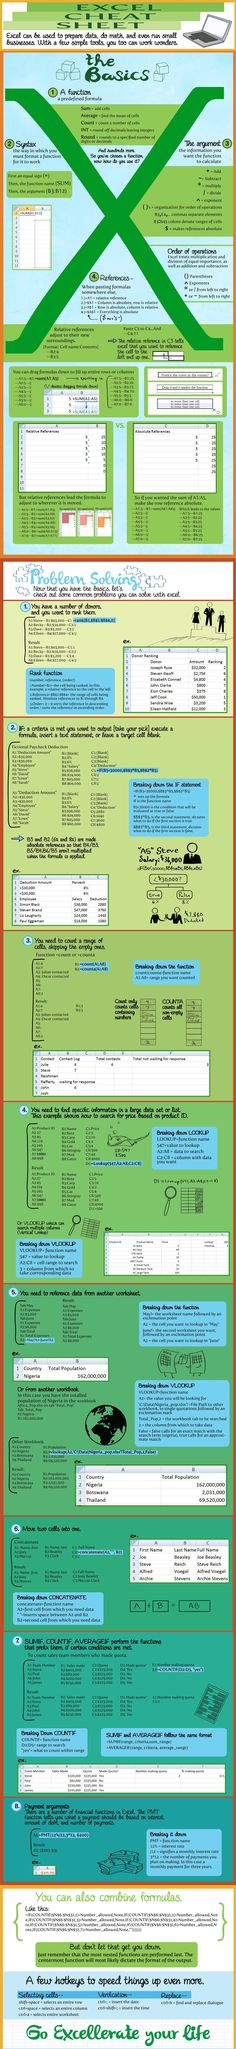 Microsoft Excel Toolbar from Computer  ICT Lesson Plans on - sign up sheet template excel